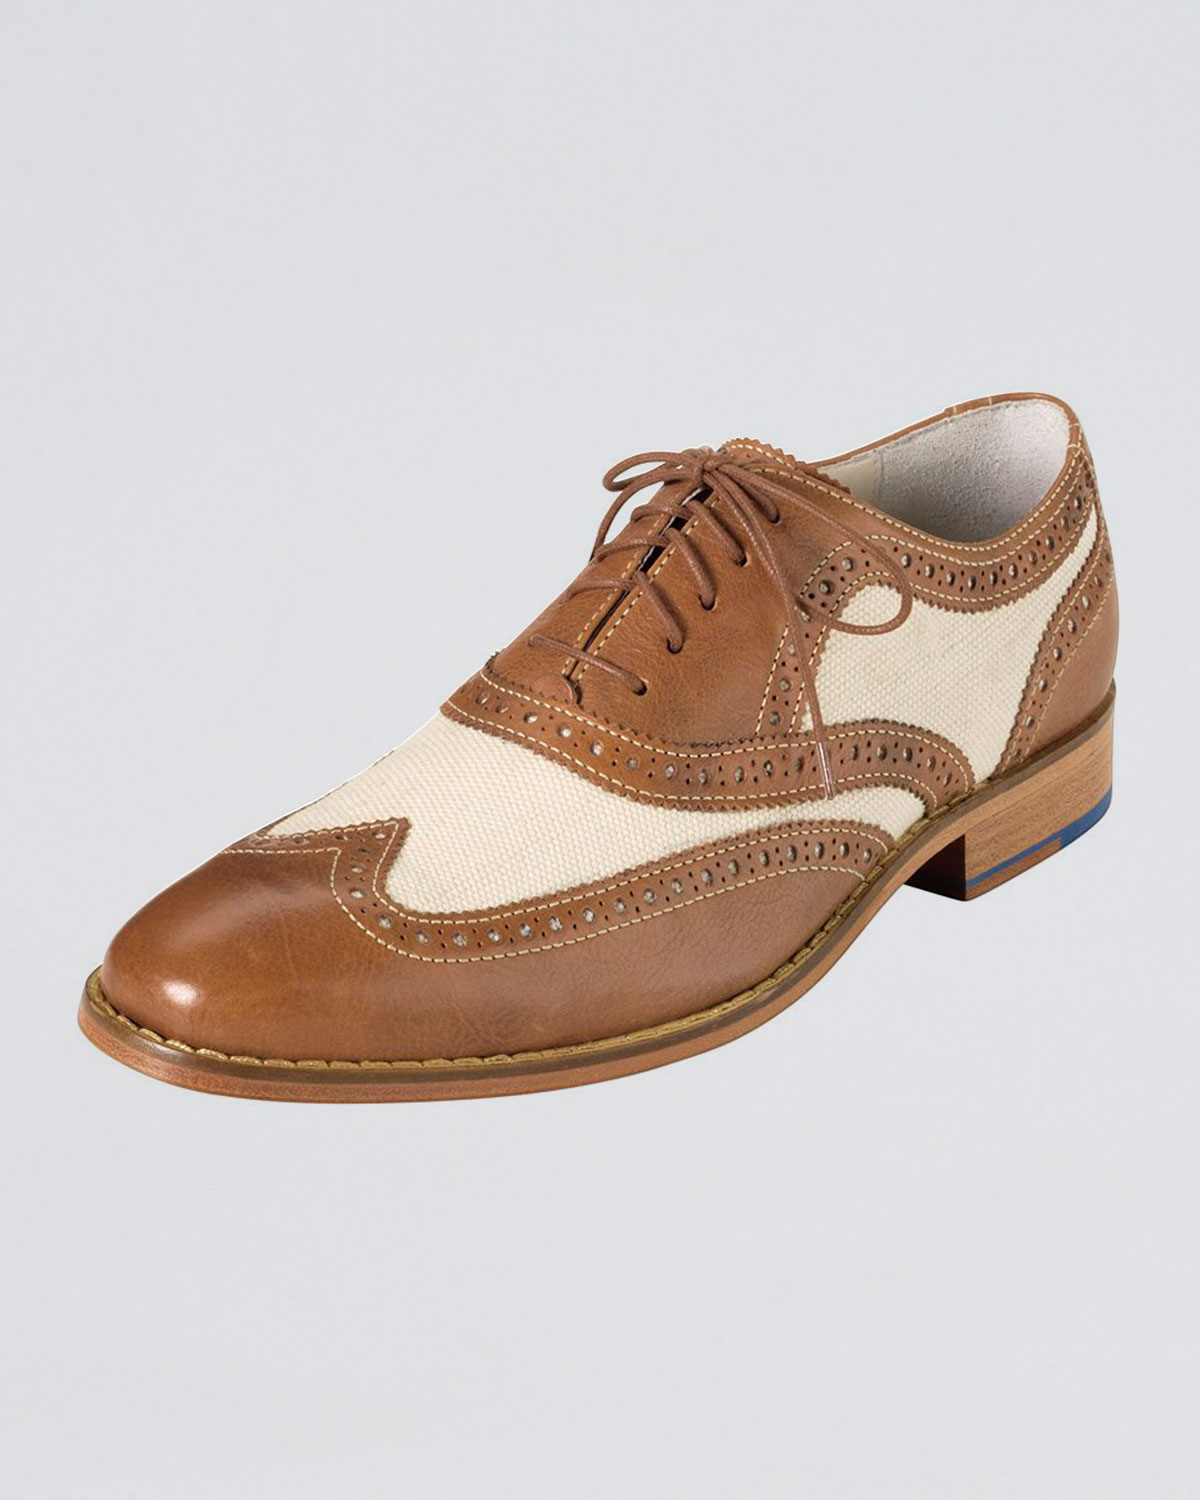 Lyst Cole Haan Air Colton Spectator Shoe In Brown For Men